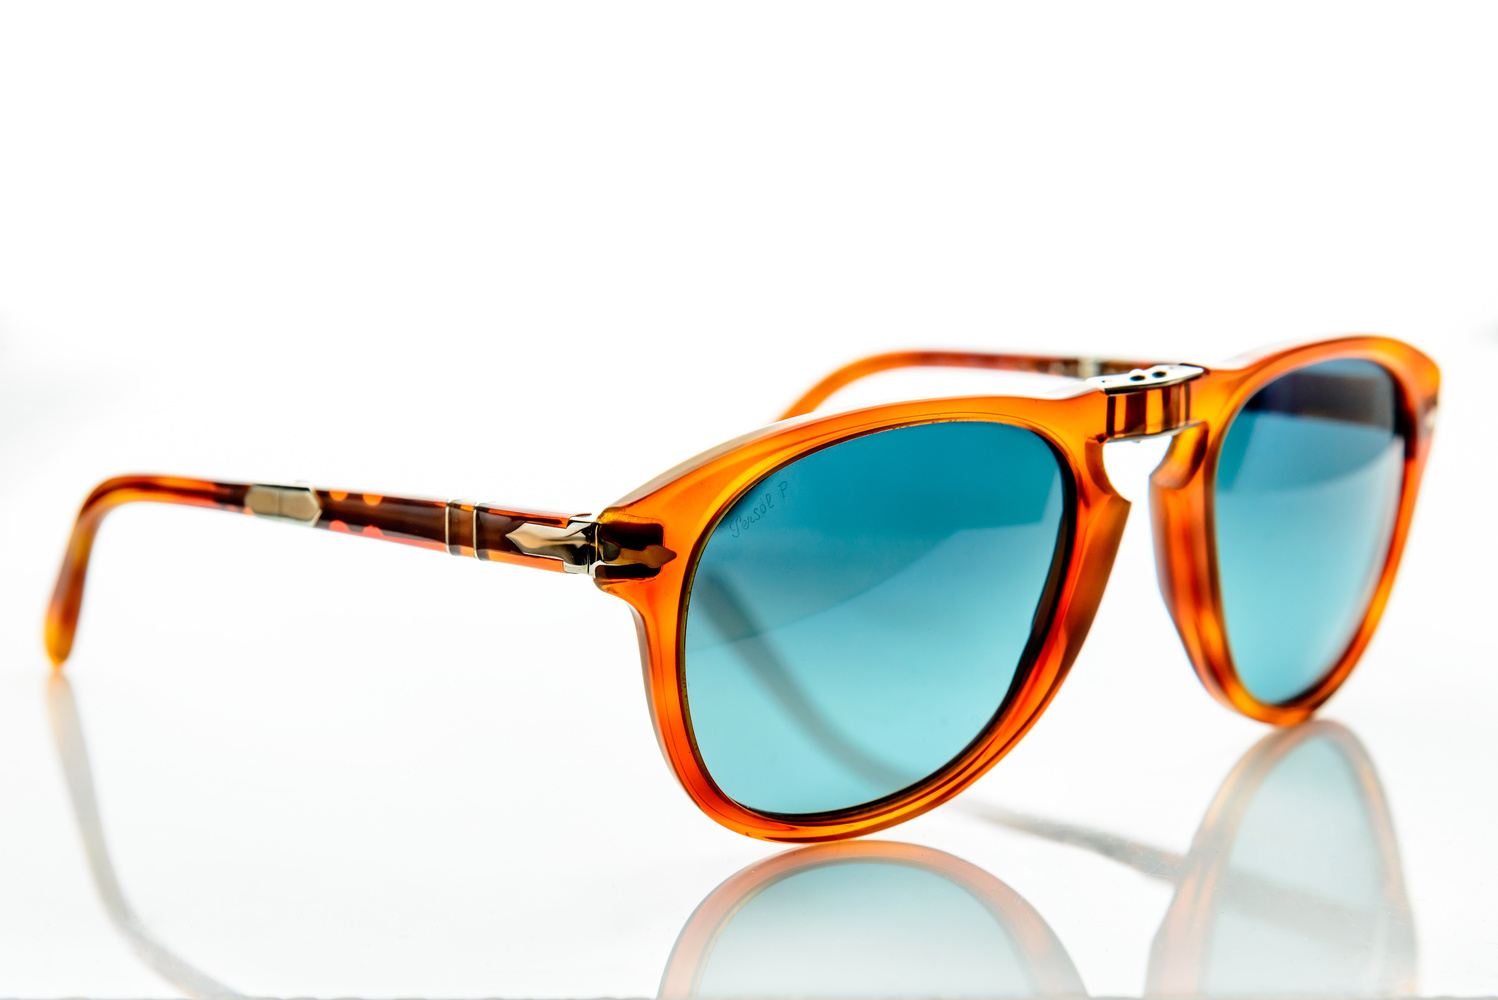 Persol 714 by Richard Hart